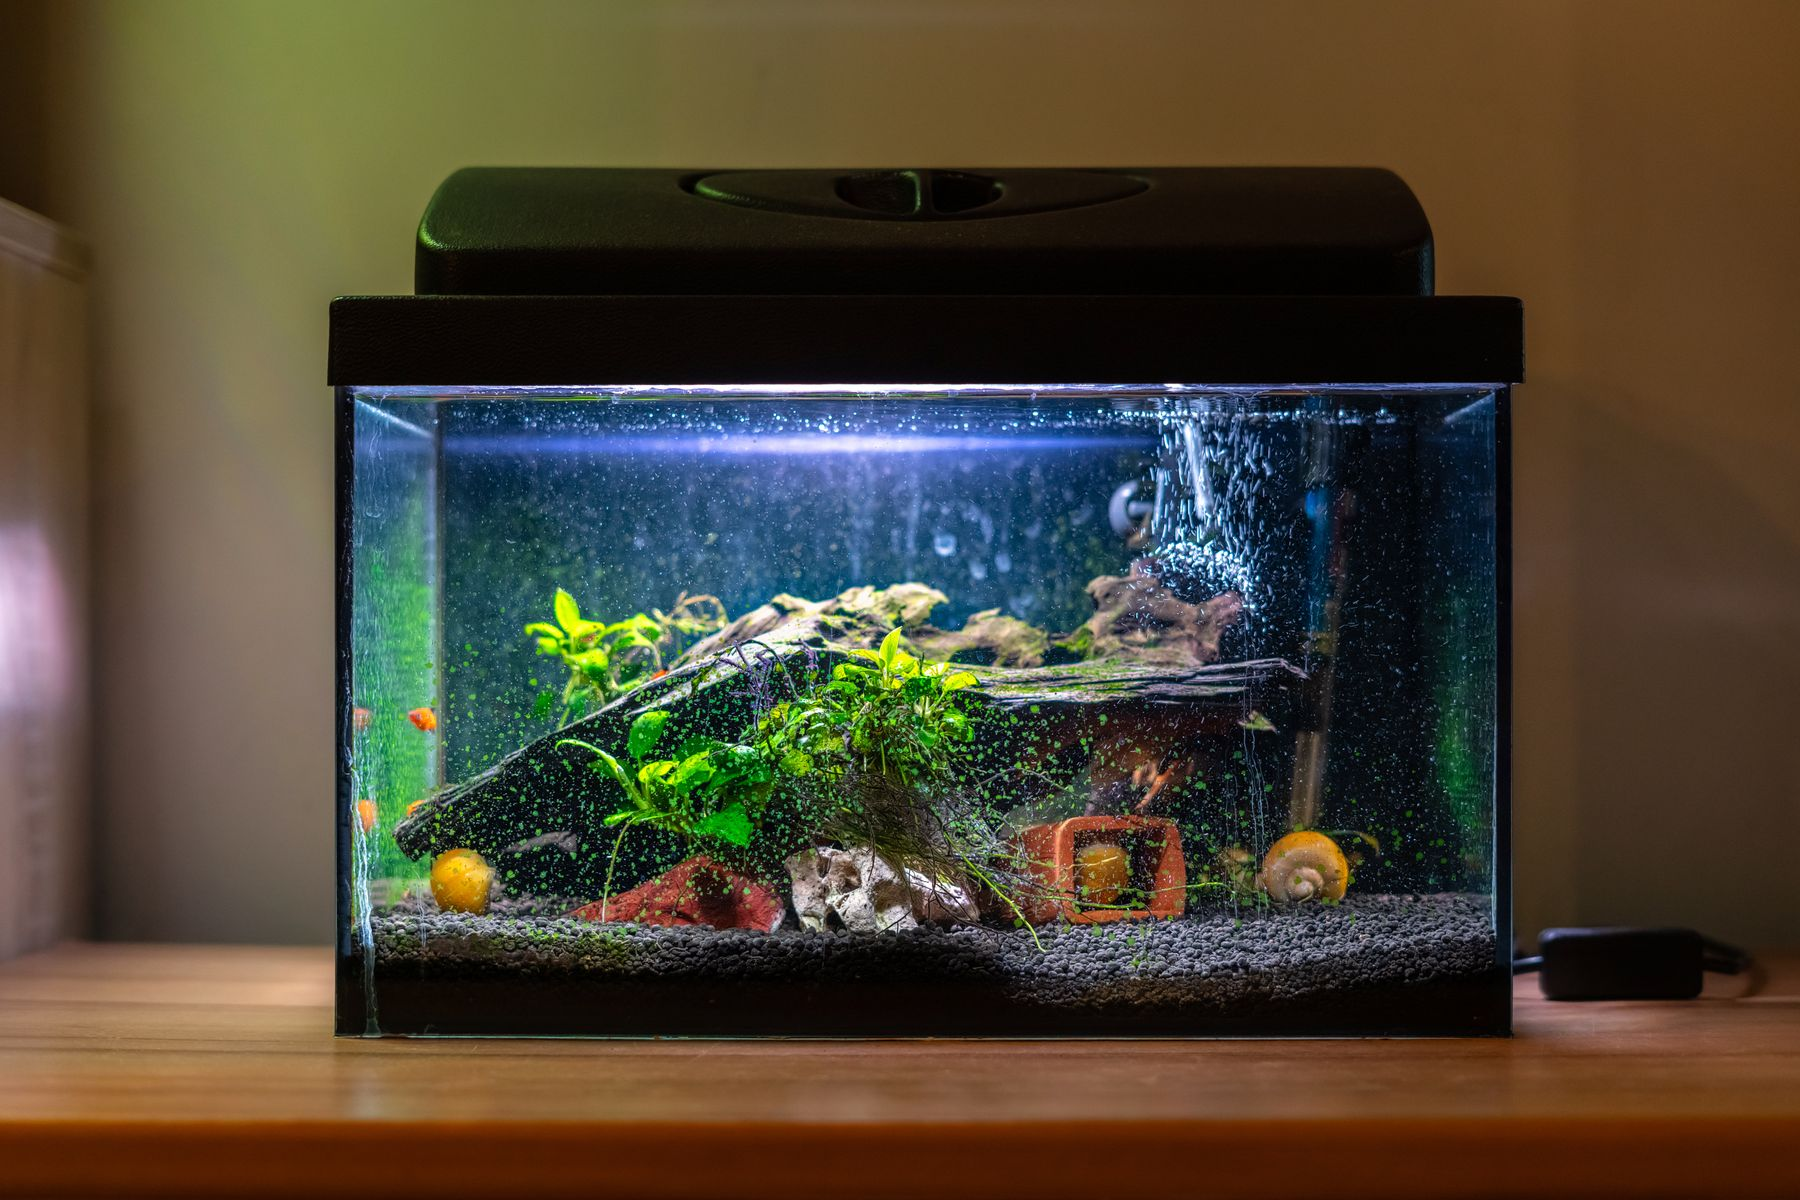 colourful fish tank sitting on a wooden surface